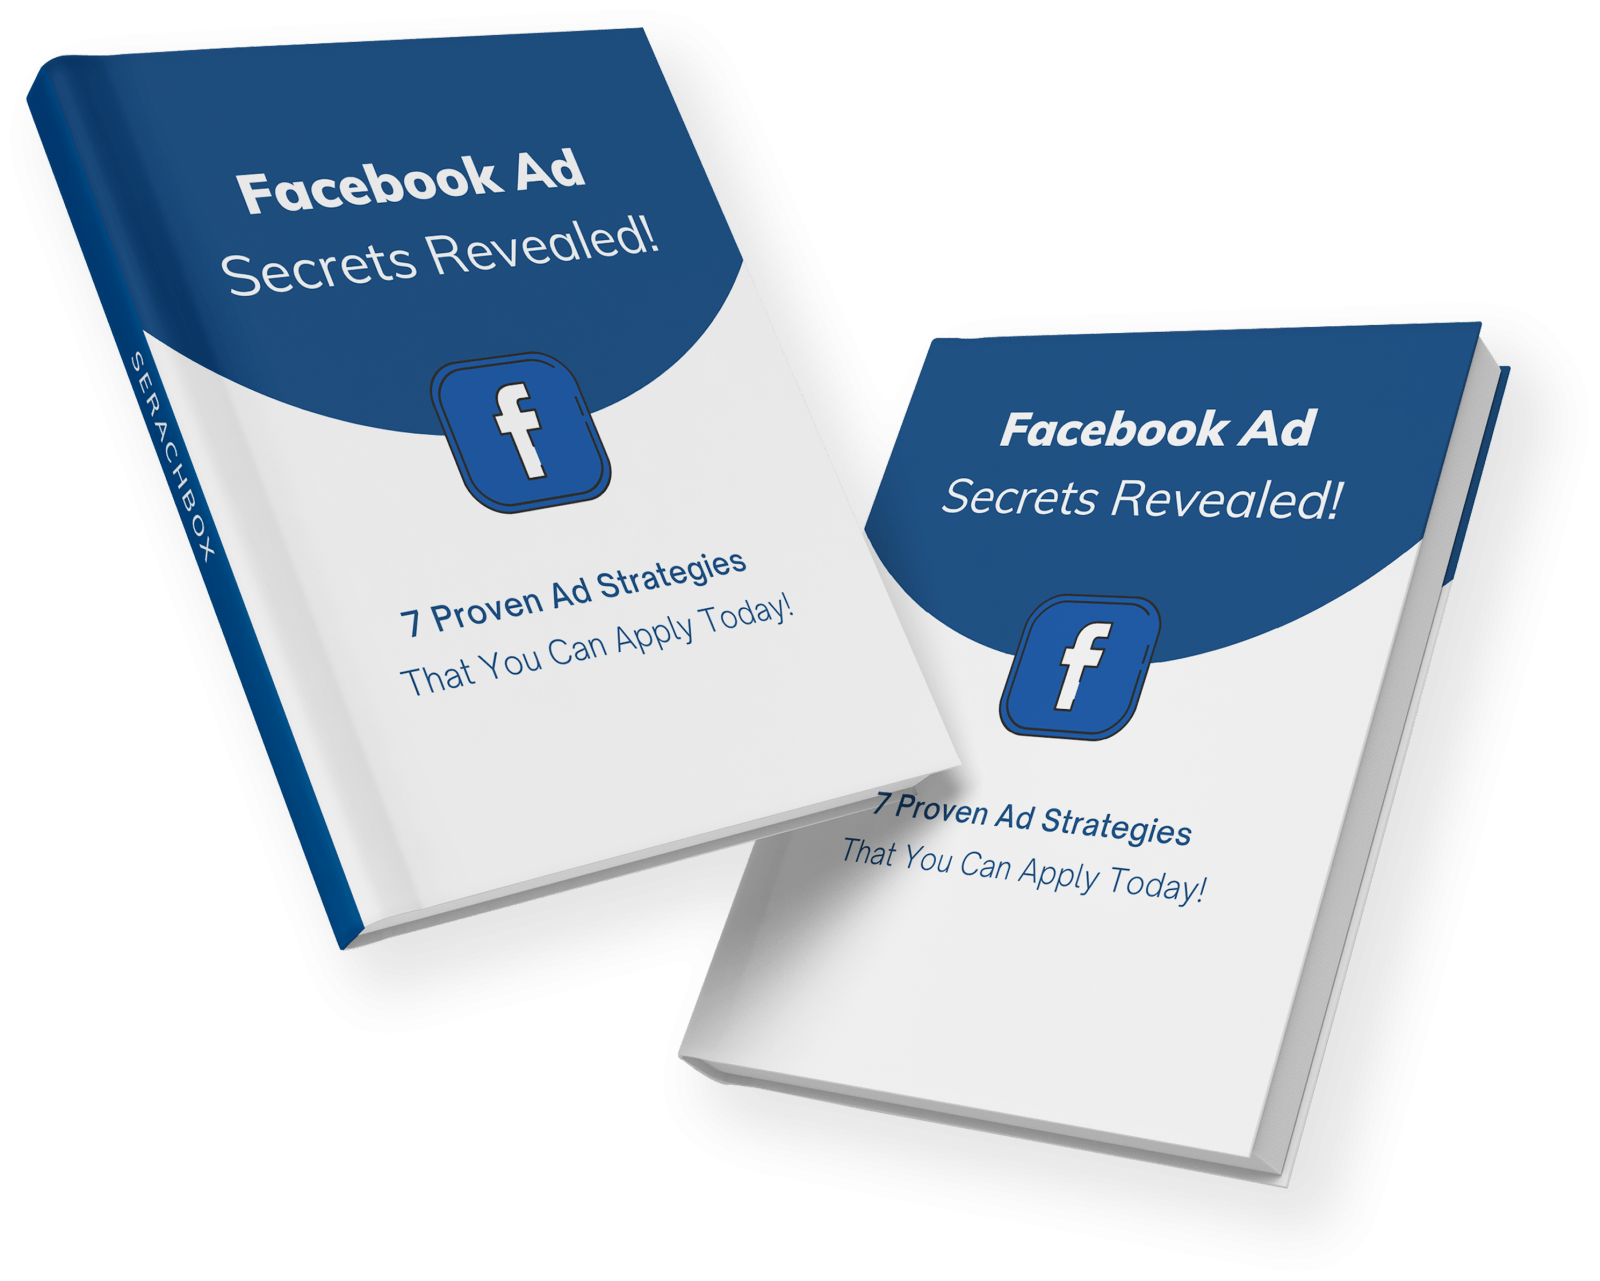 Facebook Ad strategies to sky rocket your next campaign